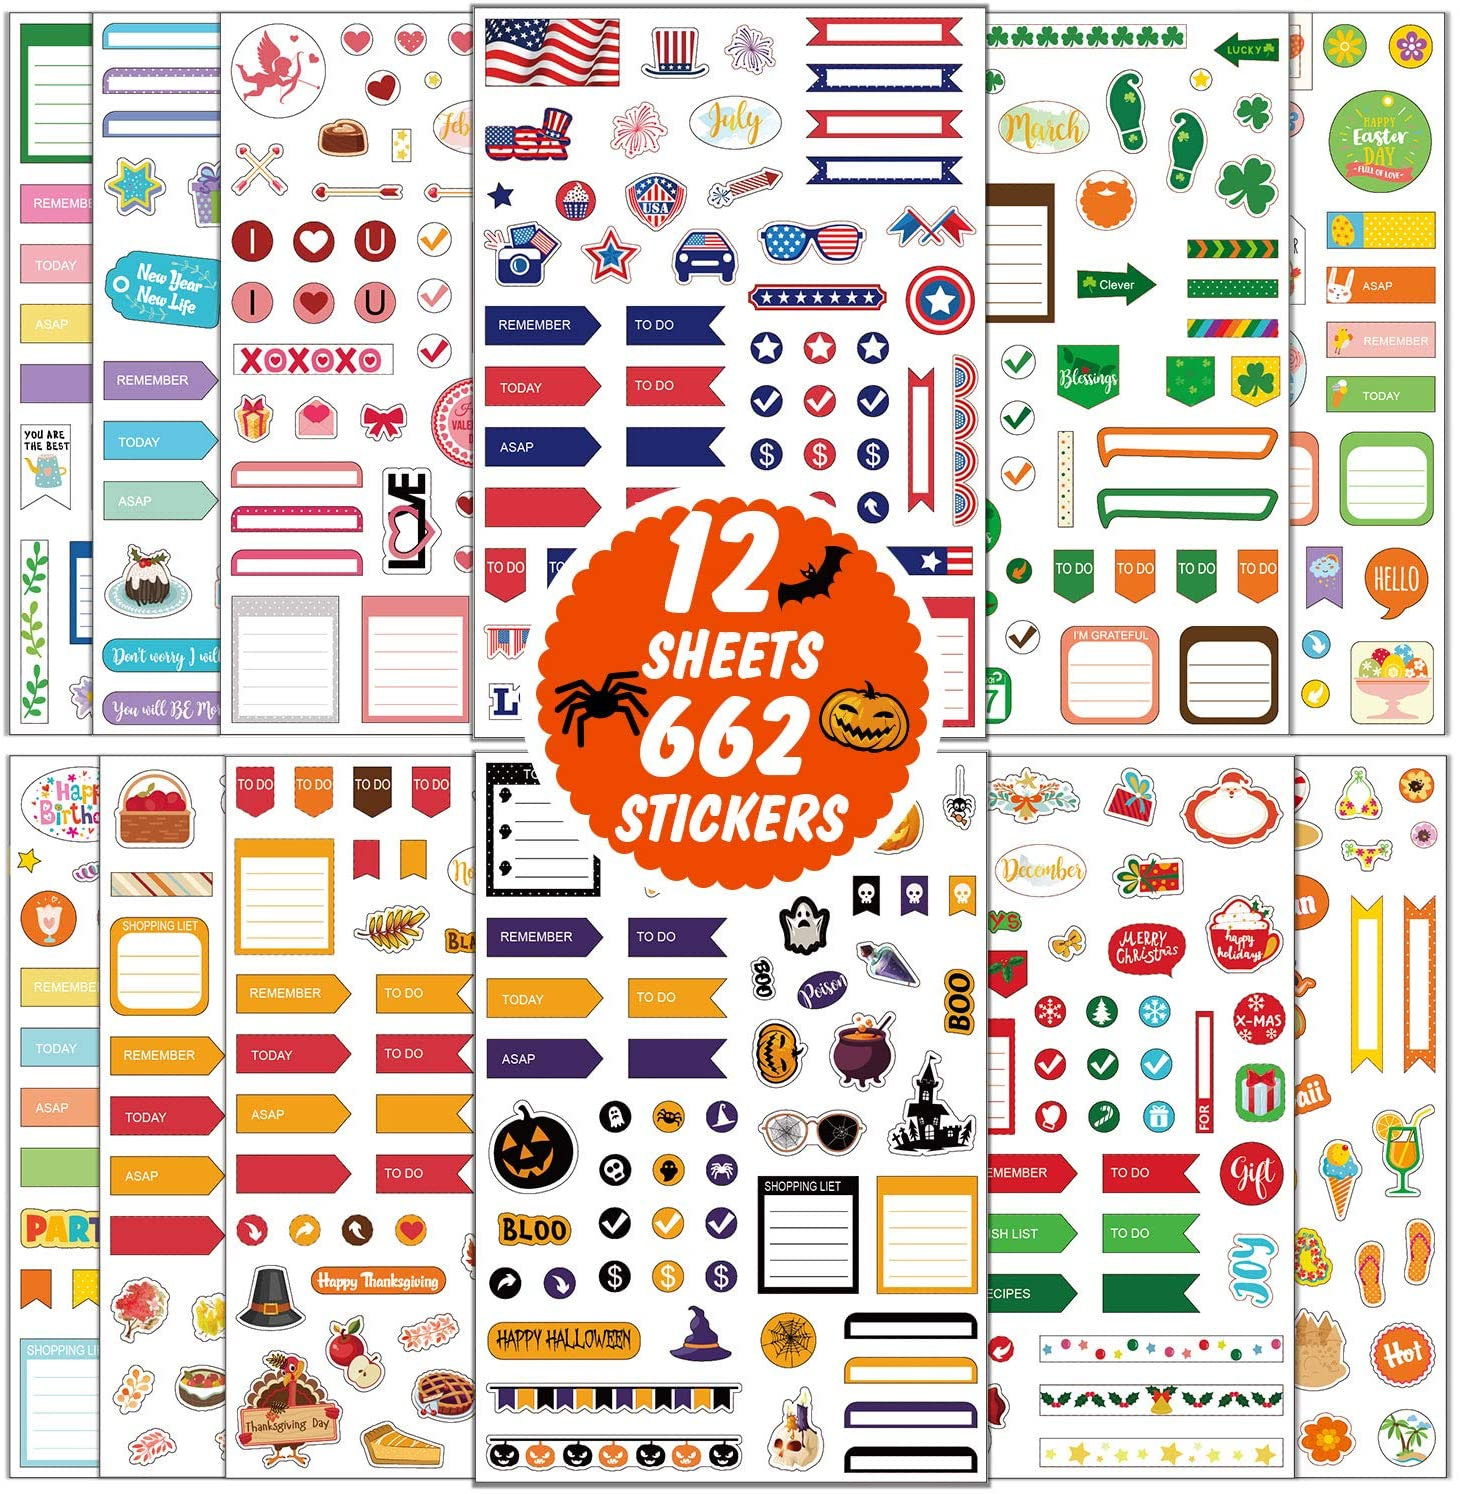 662 Pieces Journal Planner Stickers Set 12 Sheet Different Seasonal Sticker Decorative DIY Craft for Monthly Weekly Daily Planner Stickers Calendars